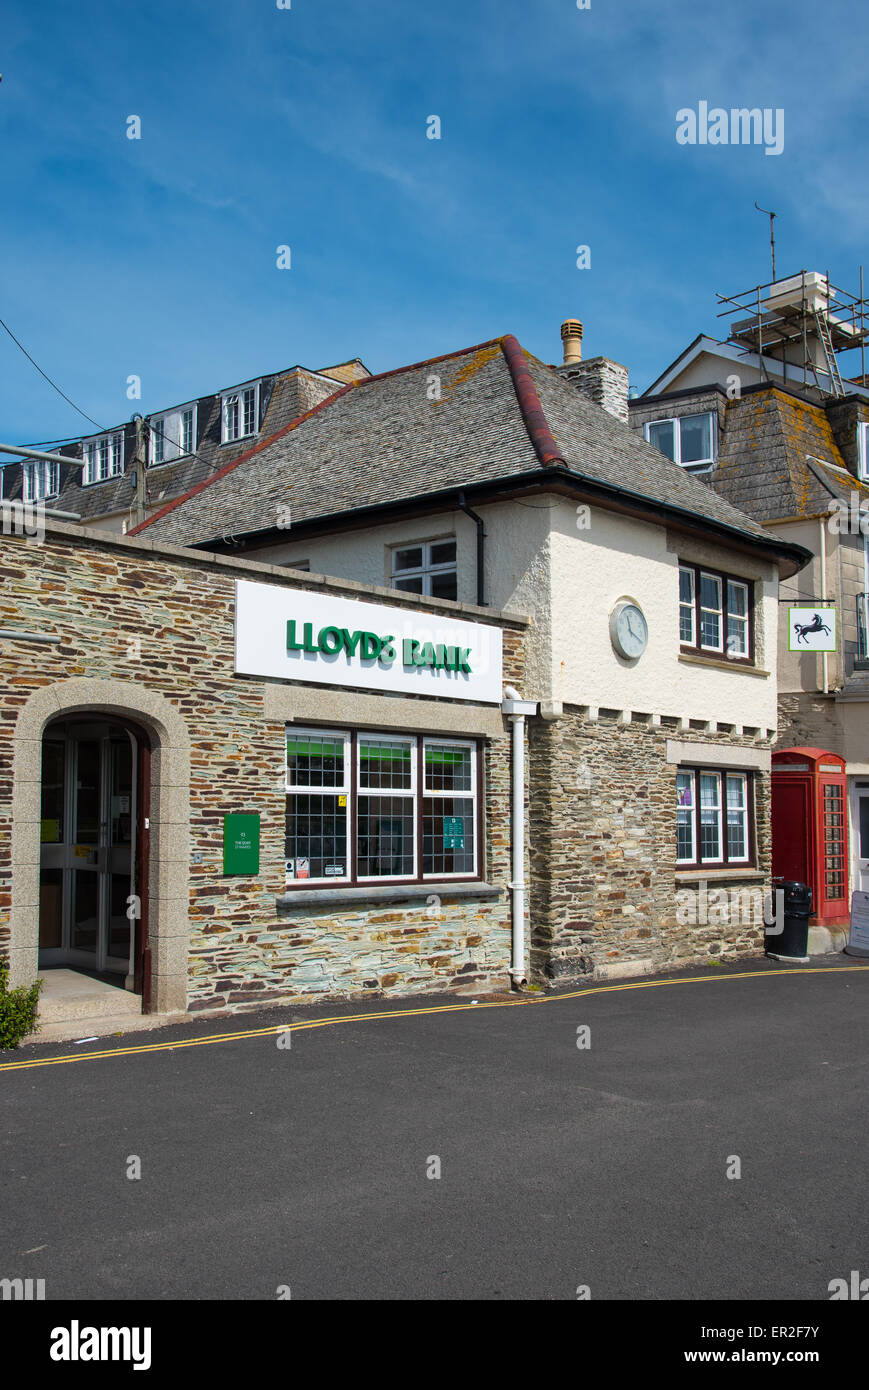 Lloyds Bank branch in St Mawes, Cornwall. - Stock Image